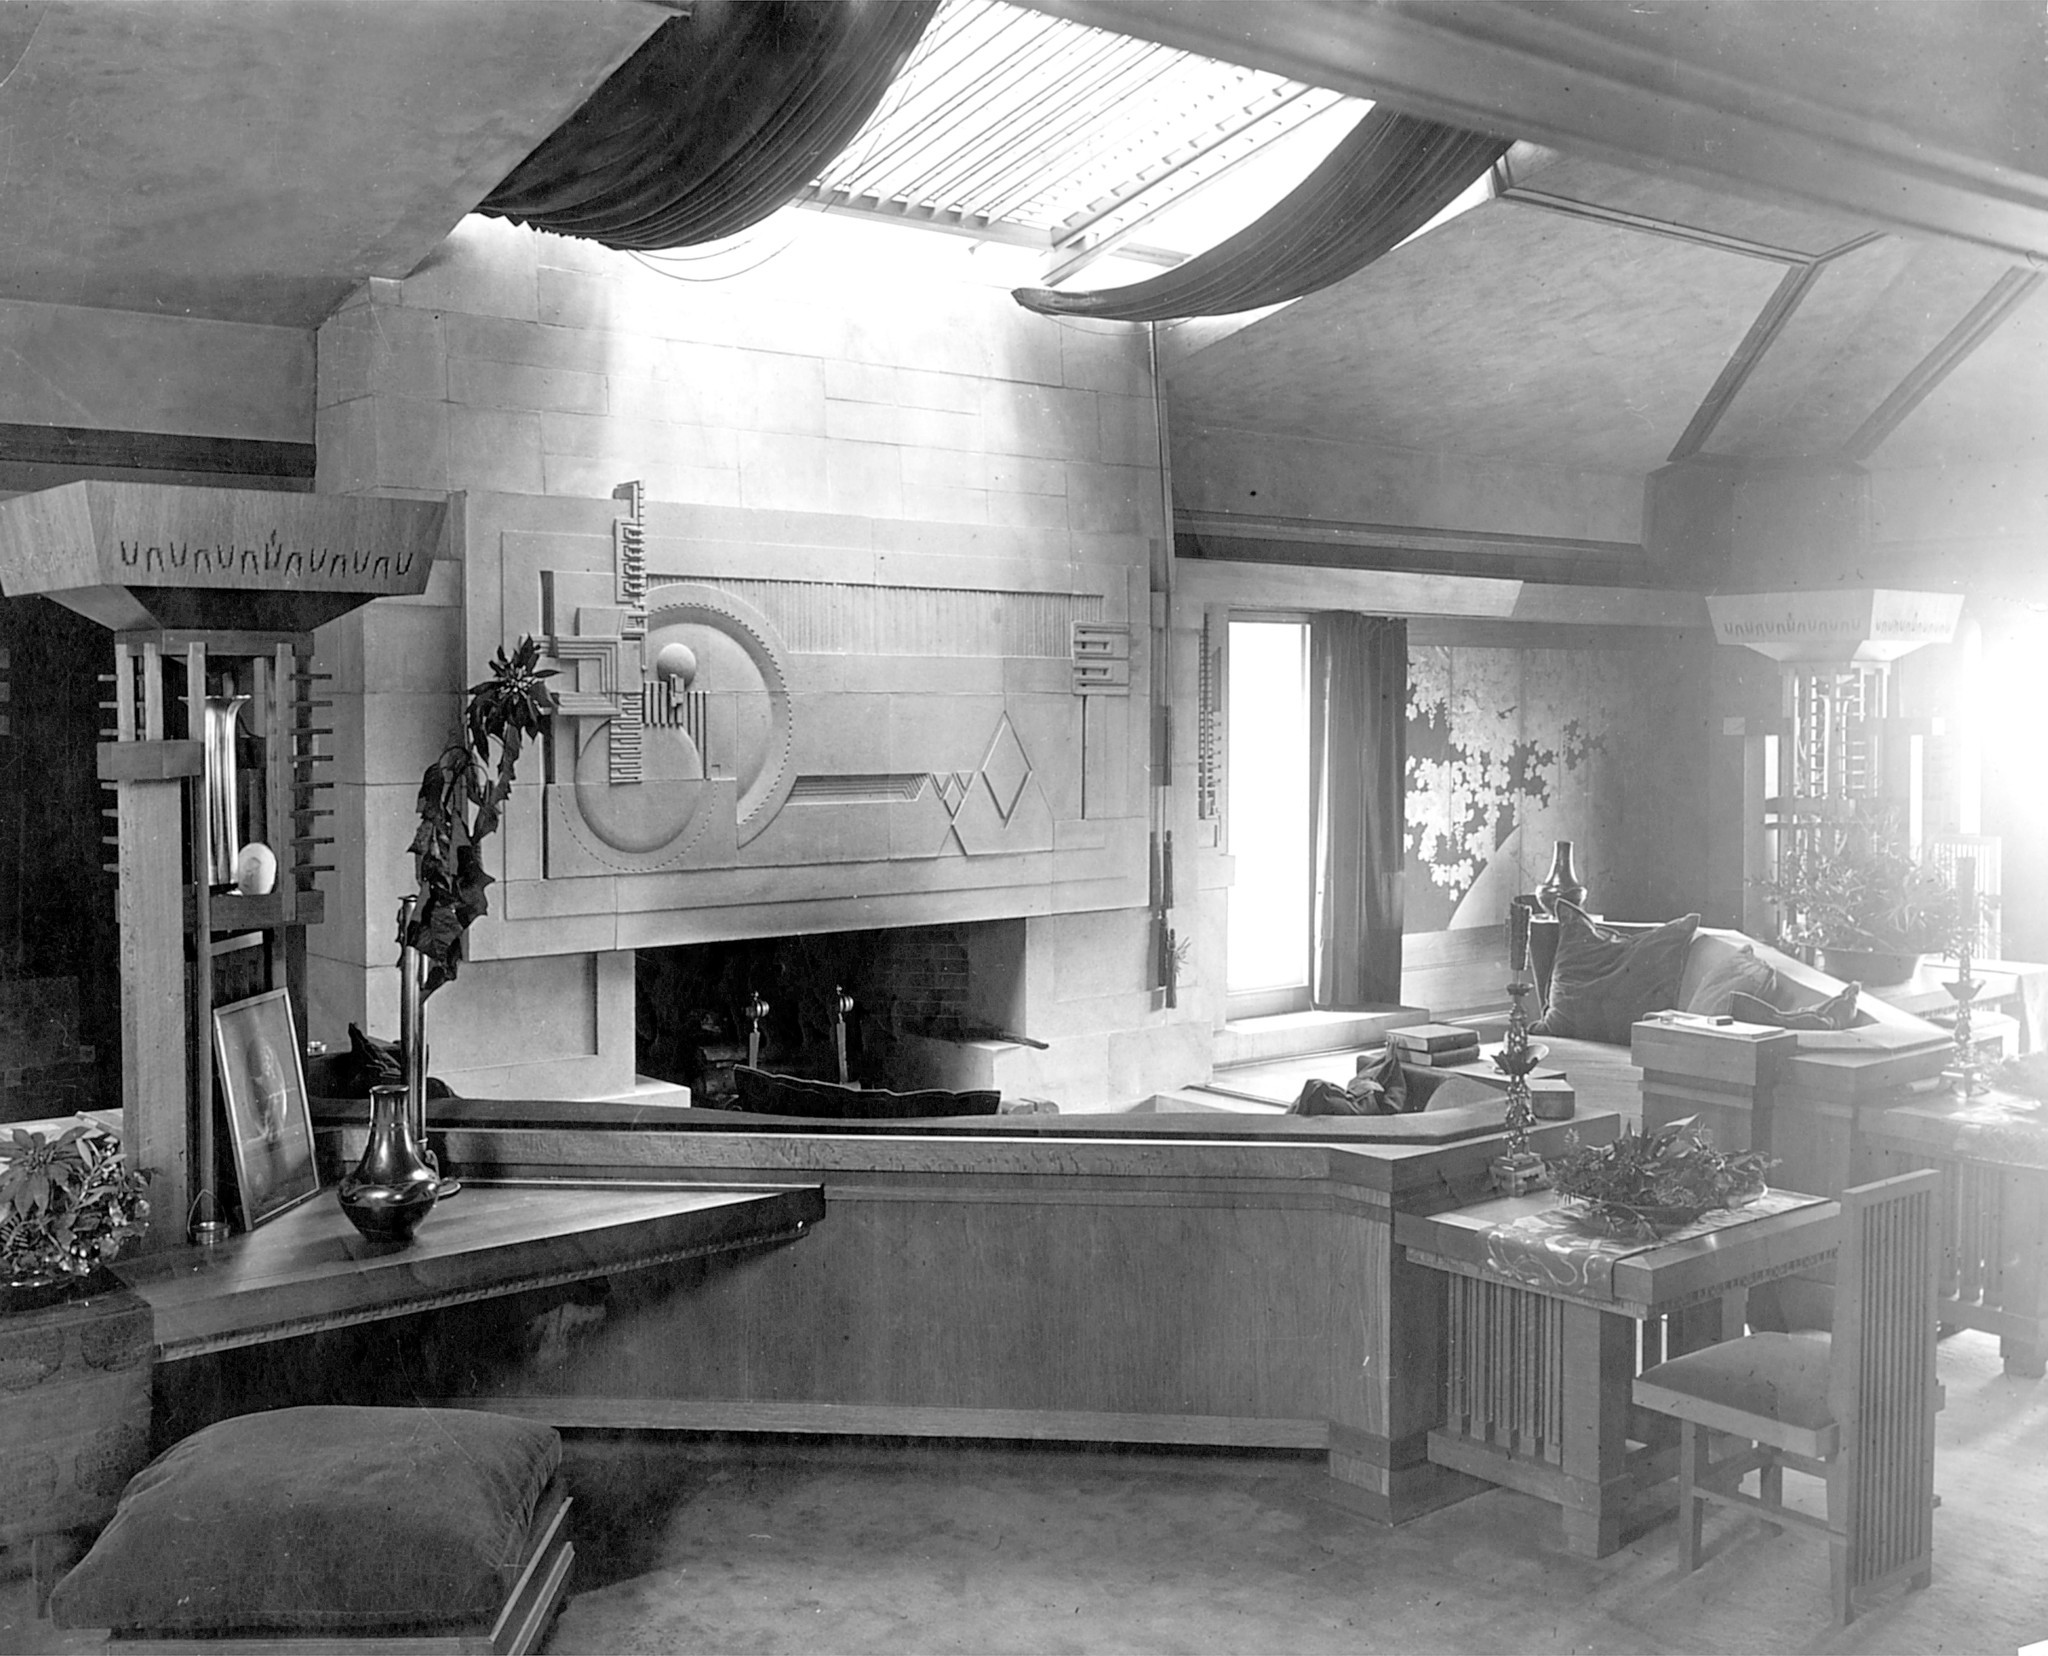 Hollyhock House in 1927.